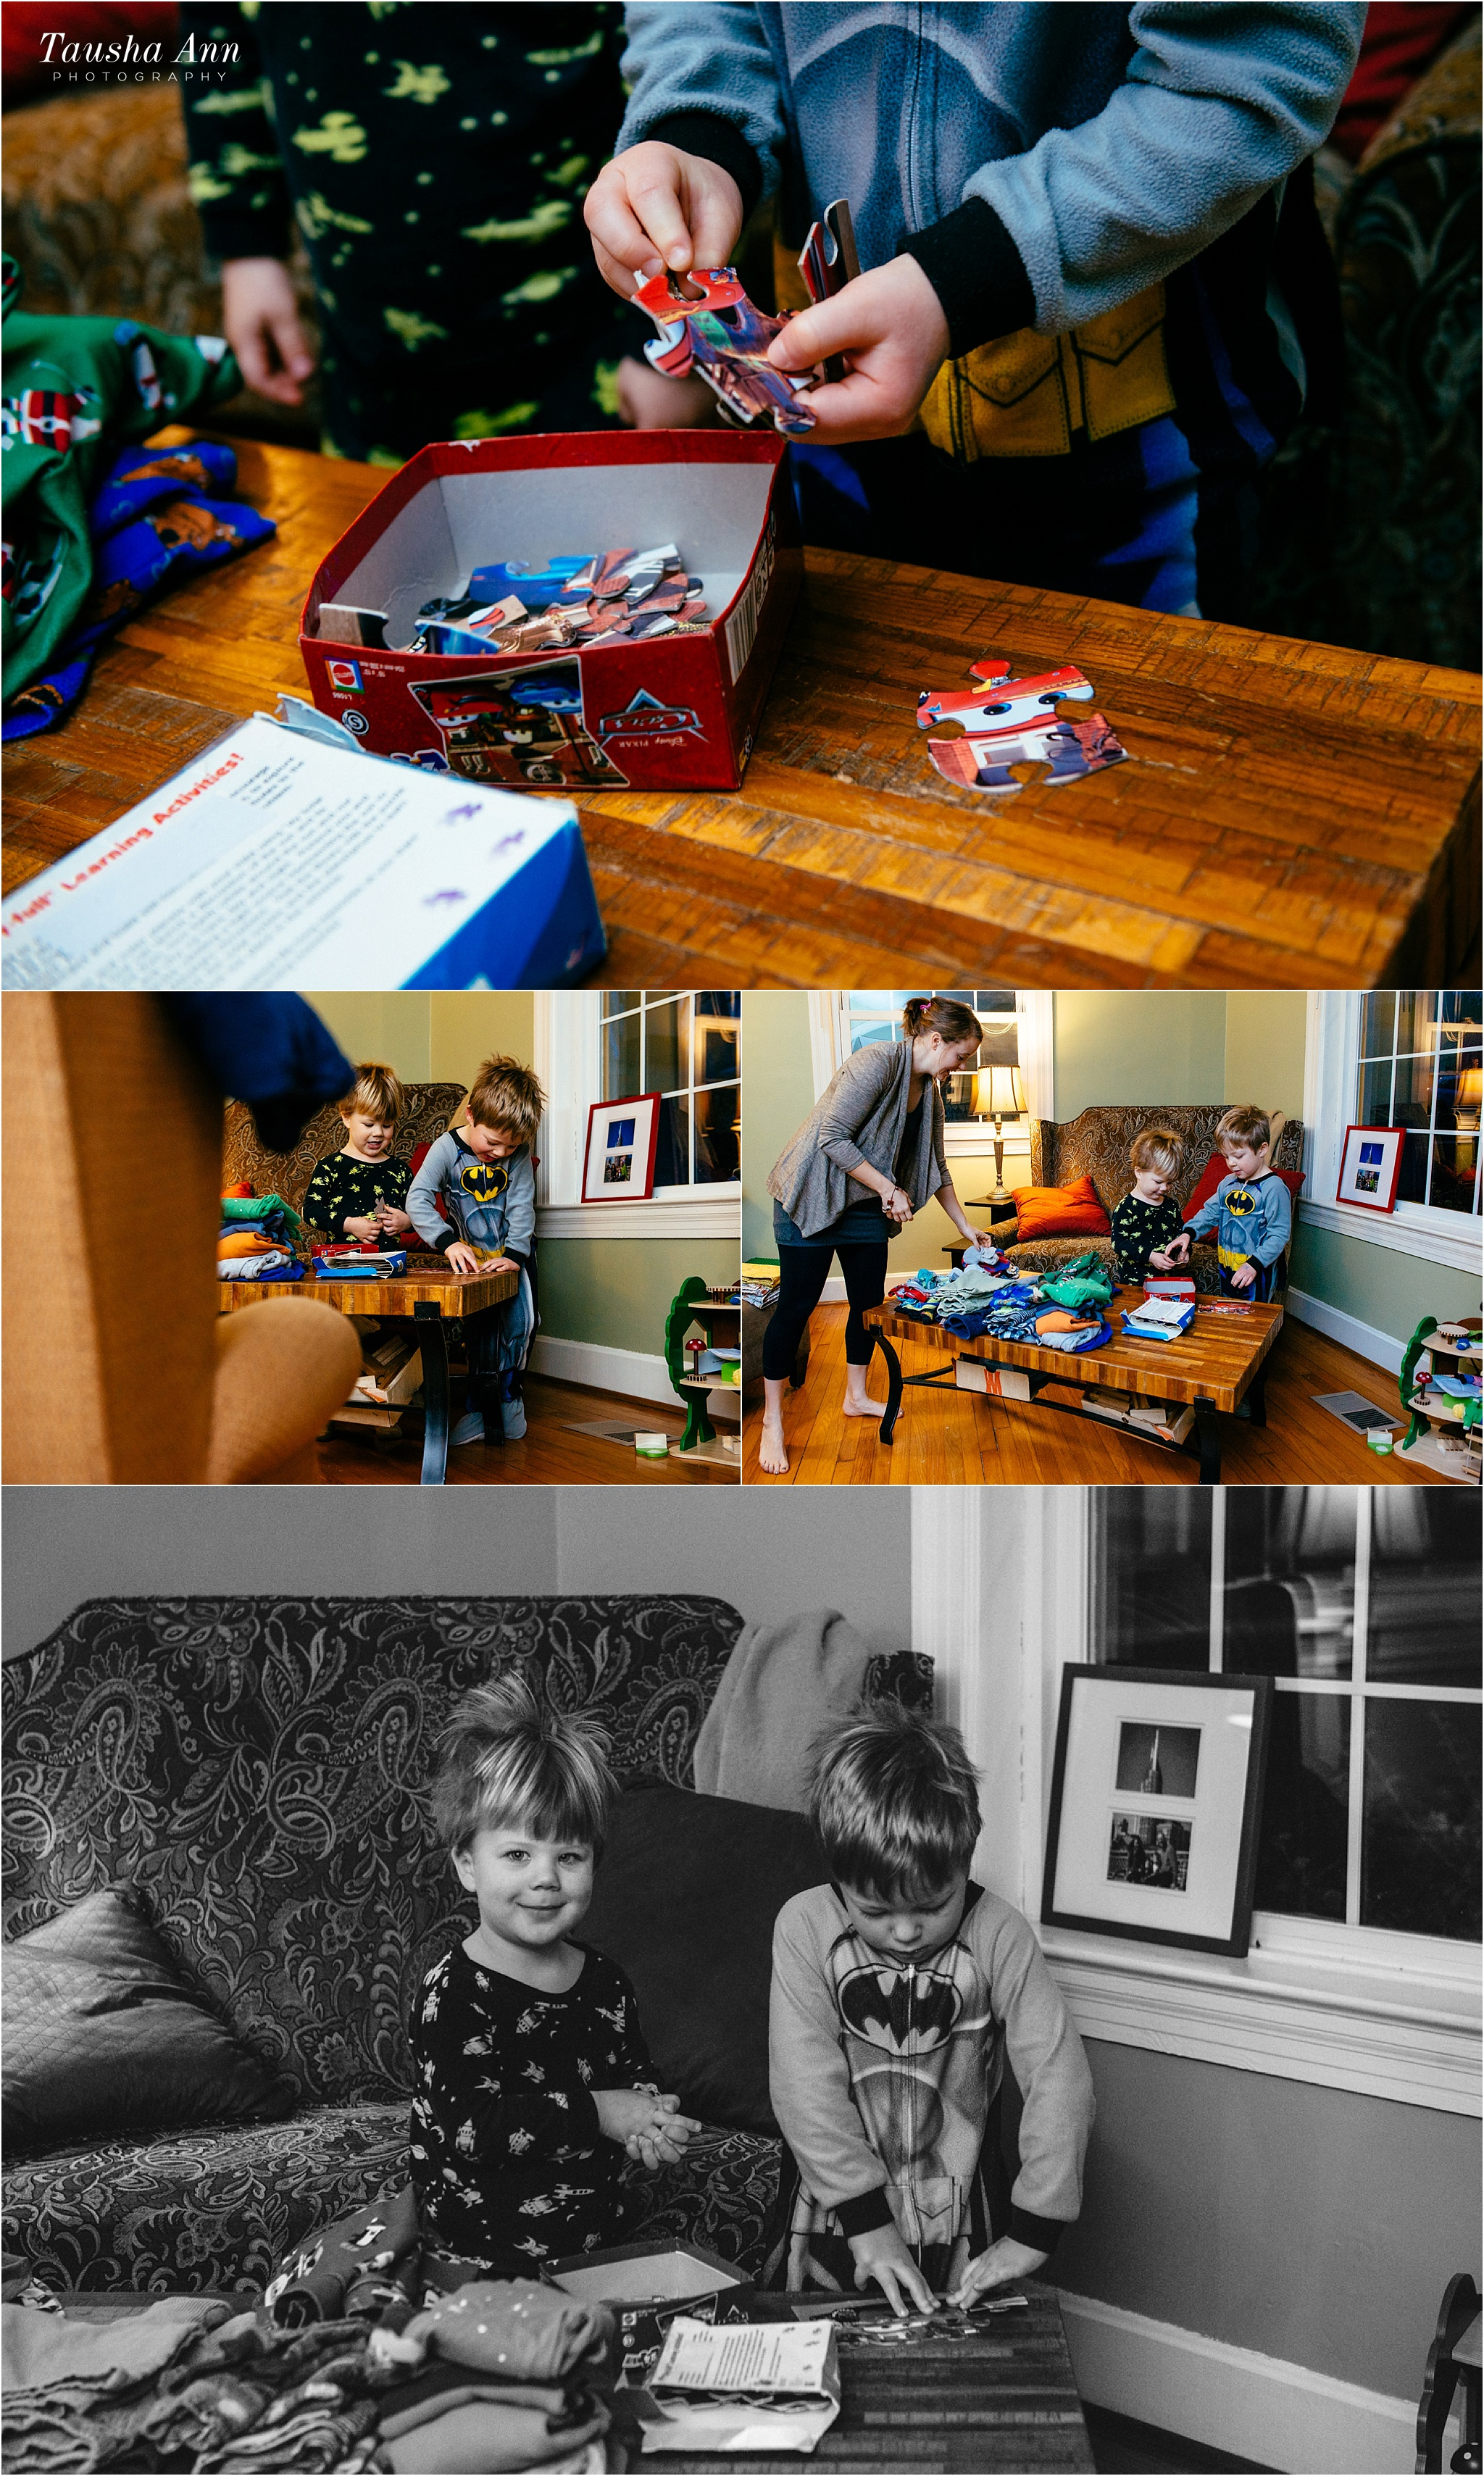 Wallace_Family-Life_At_Sunrise_Day_In_The_Life_Nashville_Moms_Blog_Tausha_Ann_Photography_Family_Lifestyle_Puzzle